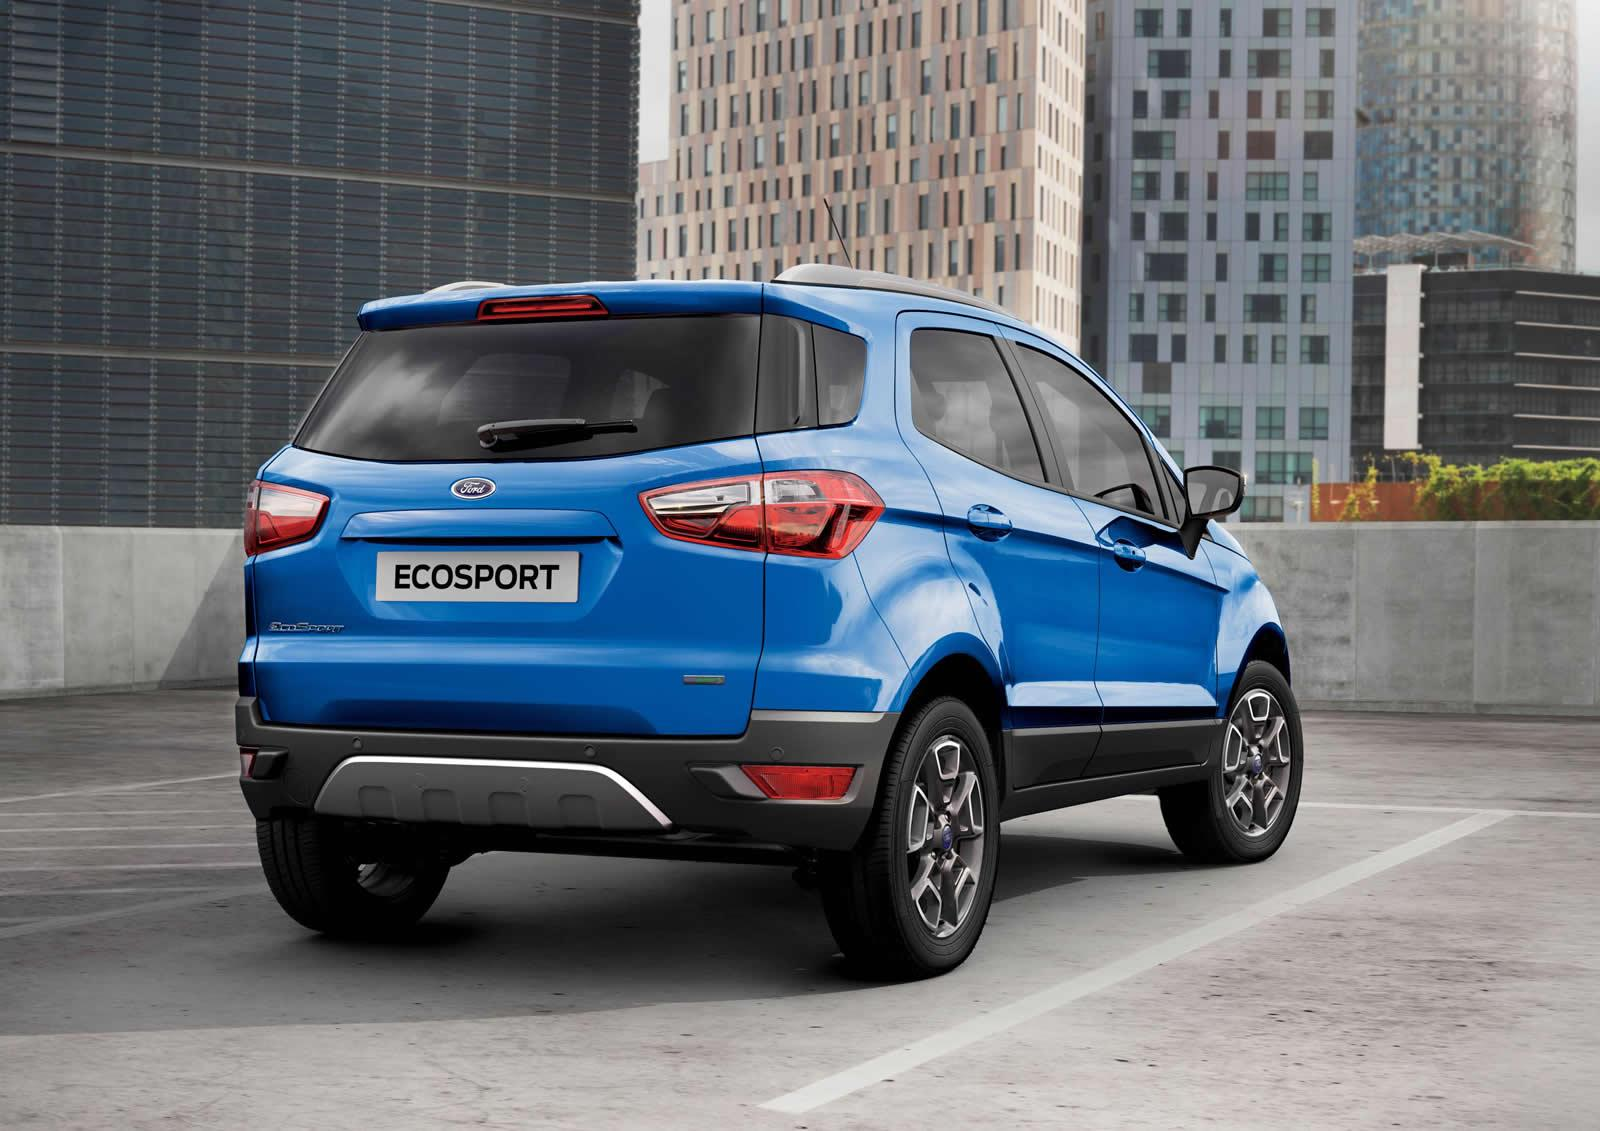 2016-Ford-EcoSport-rear-press-image-UK-specification